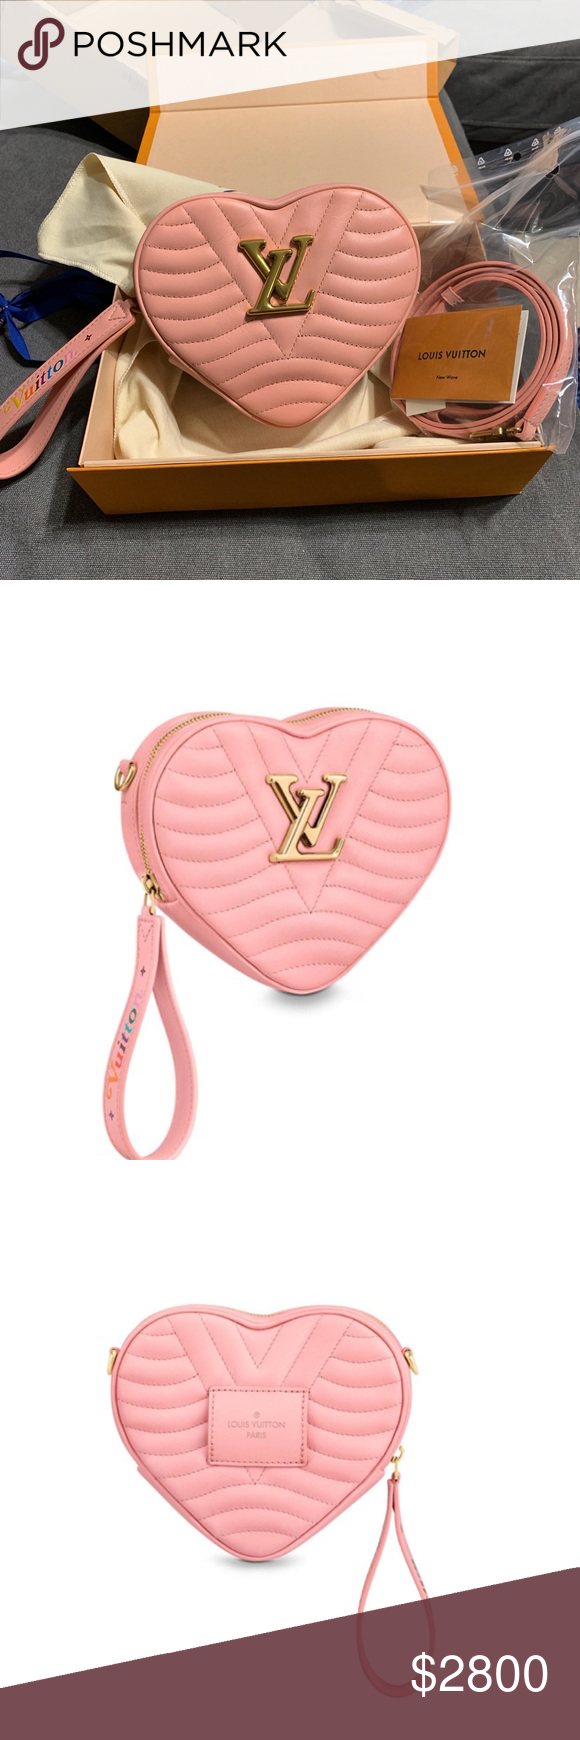 209c6cca9f13 Spotted while shopping on Poshmark  Louis Vuitton Digital Exclusive Heart  Bag!  poshmark  fashion  shopping  style  Louis Vuitton  Handbags